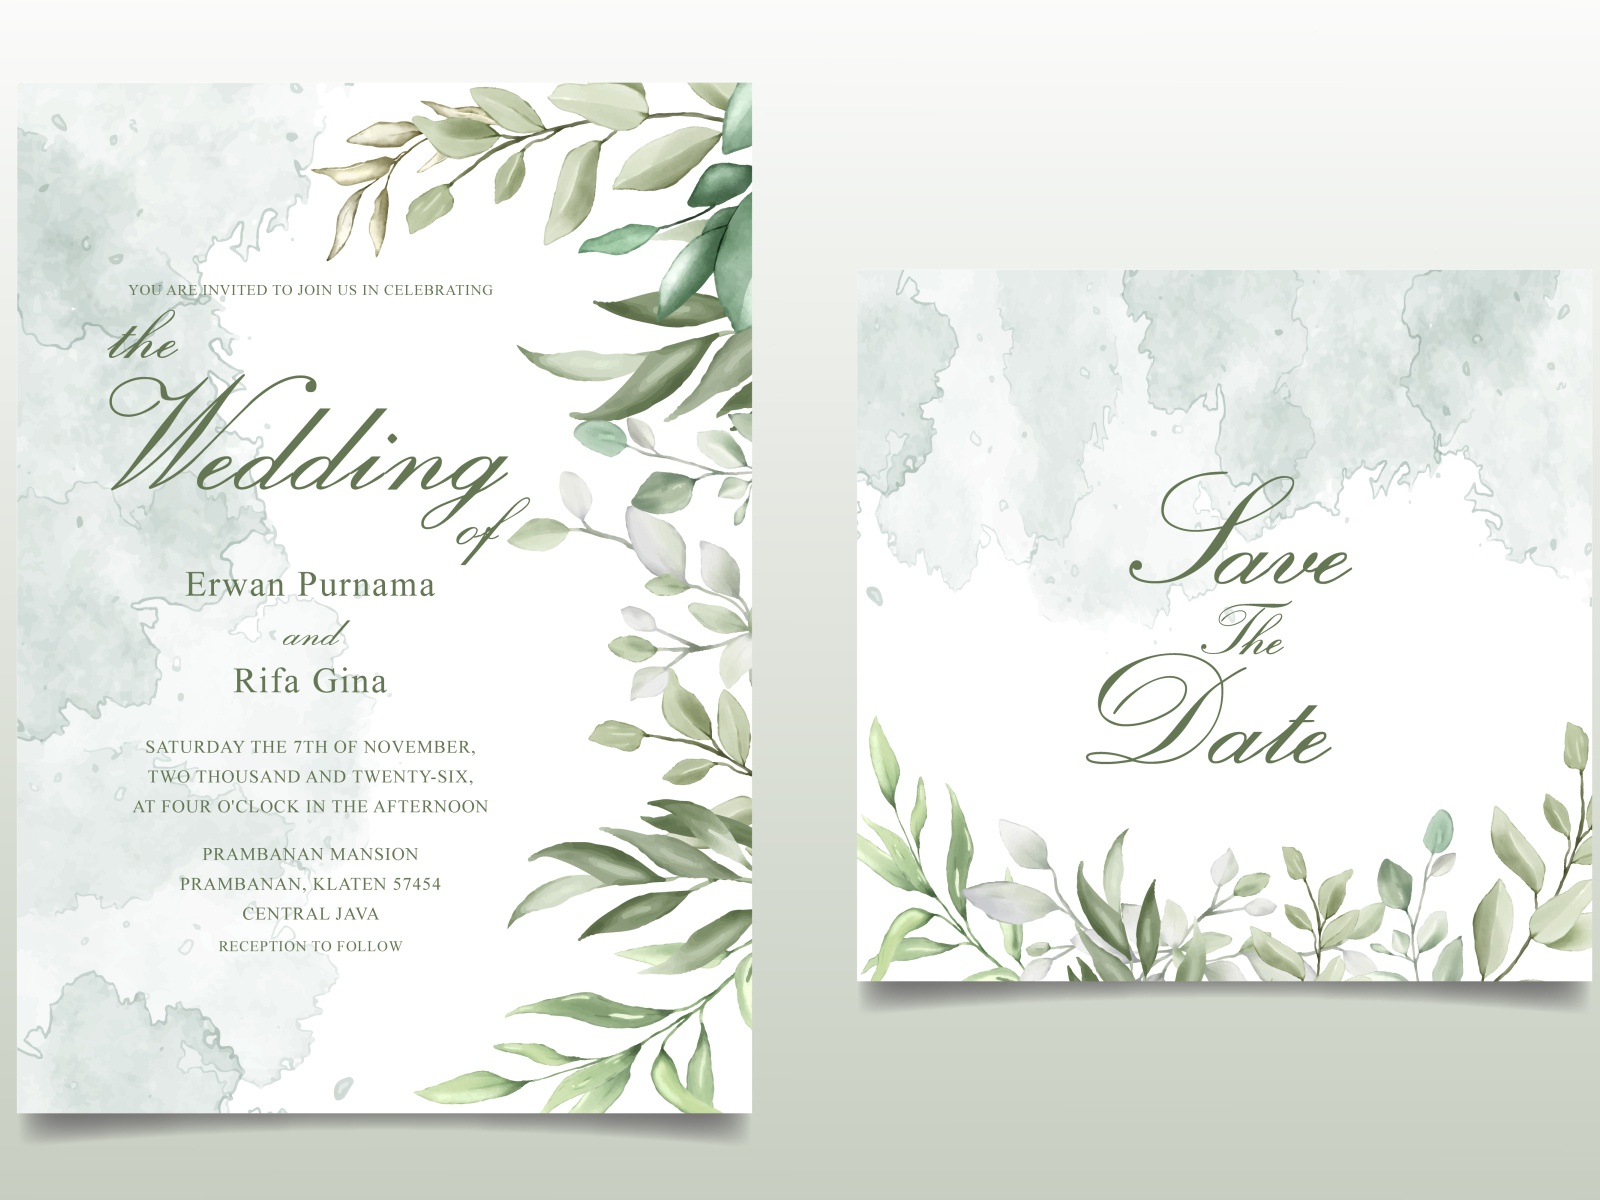 Elegant Hand drawn Wedding invitation card with Beautiful Leaves